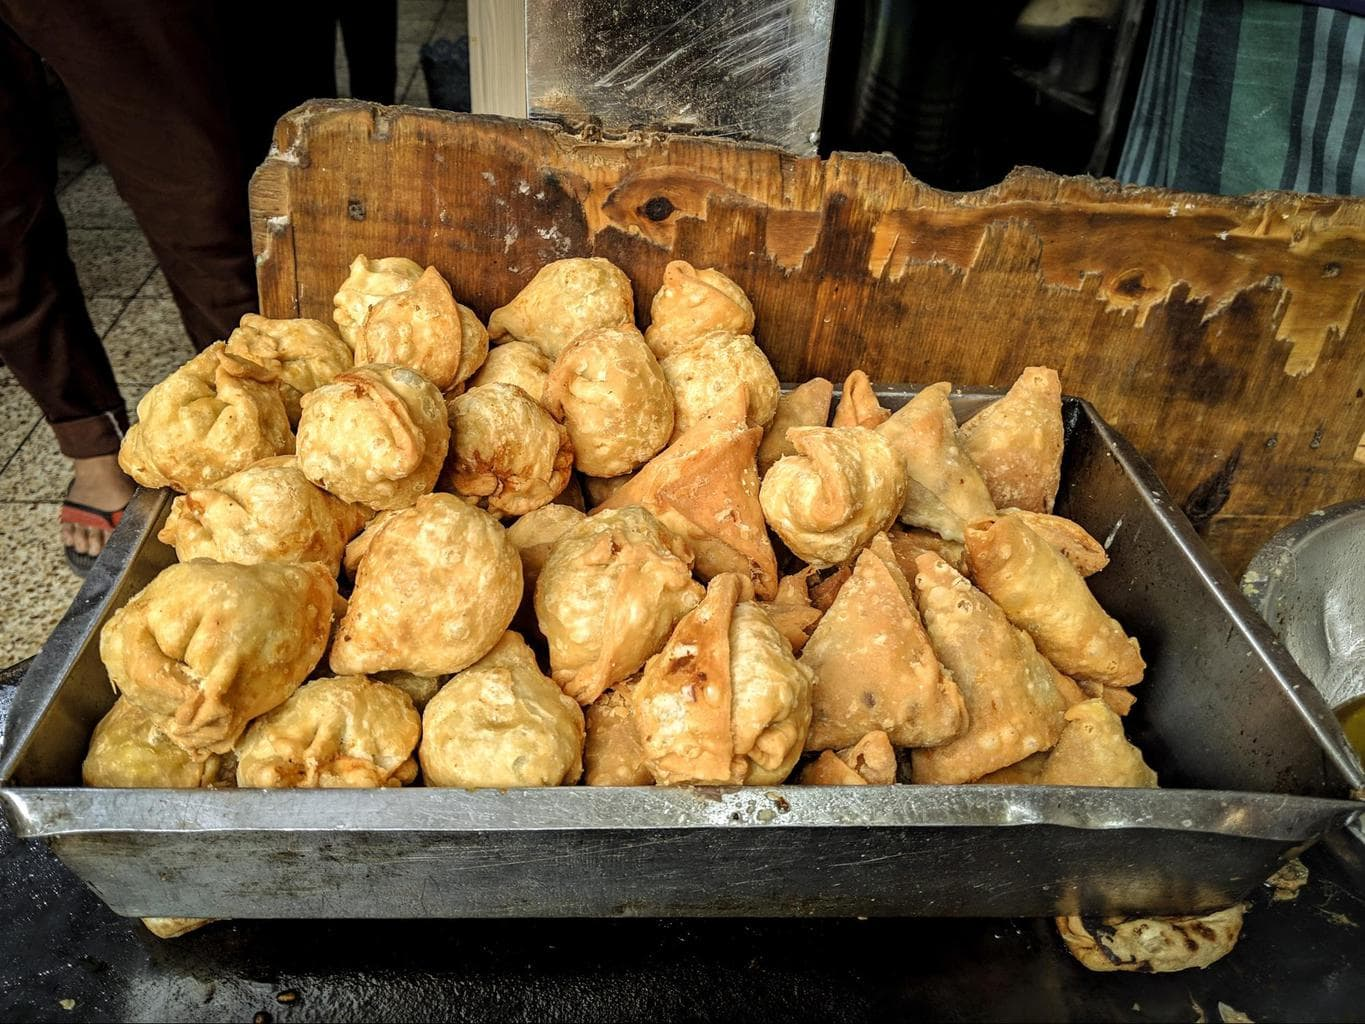 Samosa and shingara